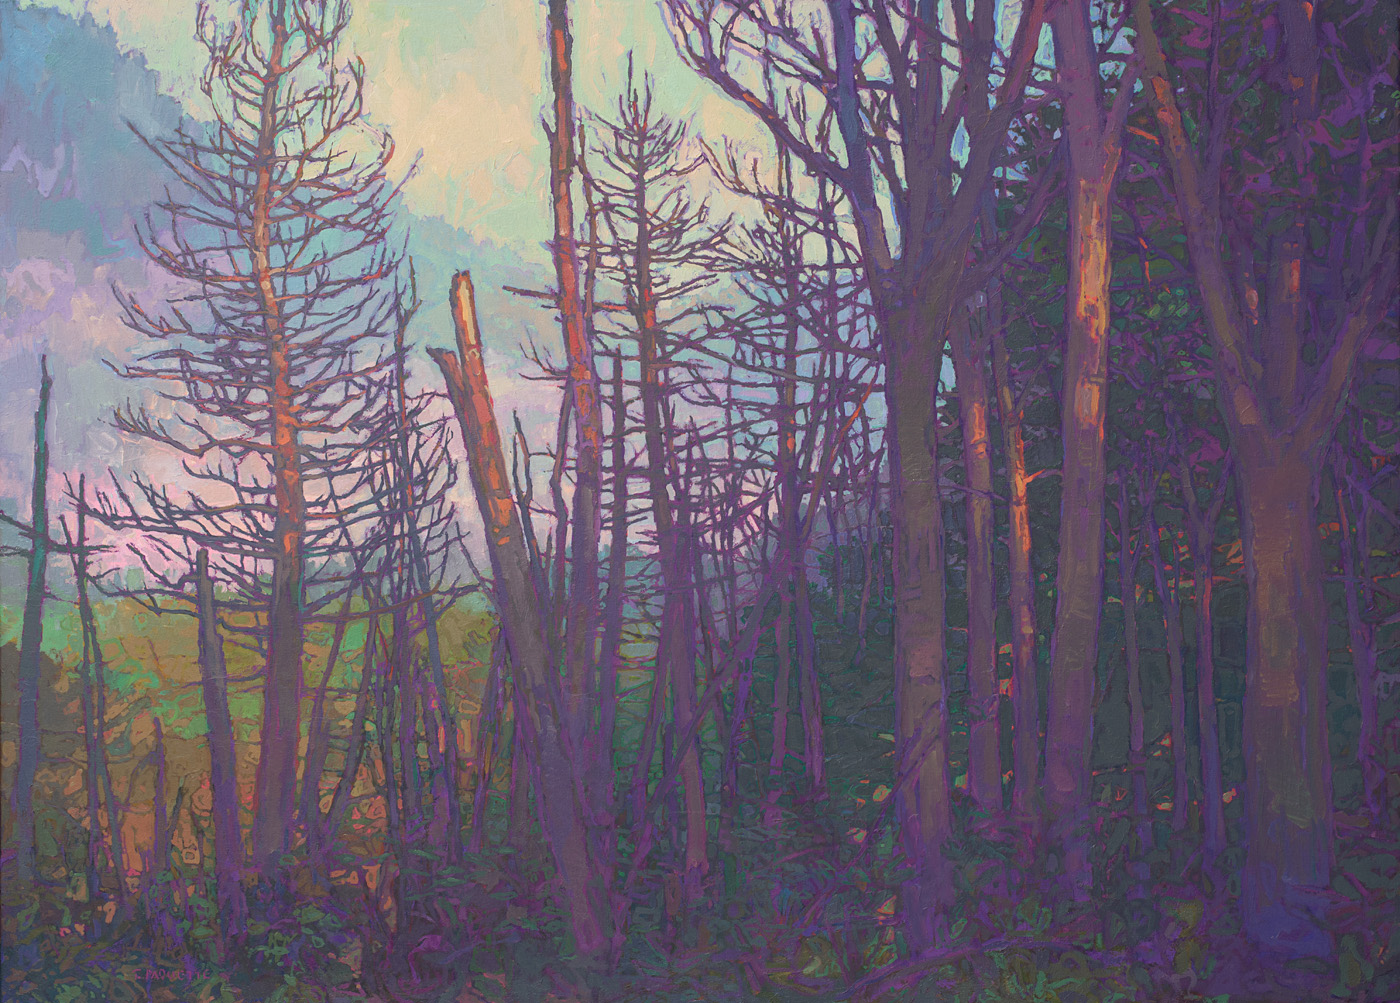 regenerating forest after a fire, contemporary landscape oil painting by Thomas Paquette